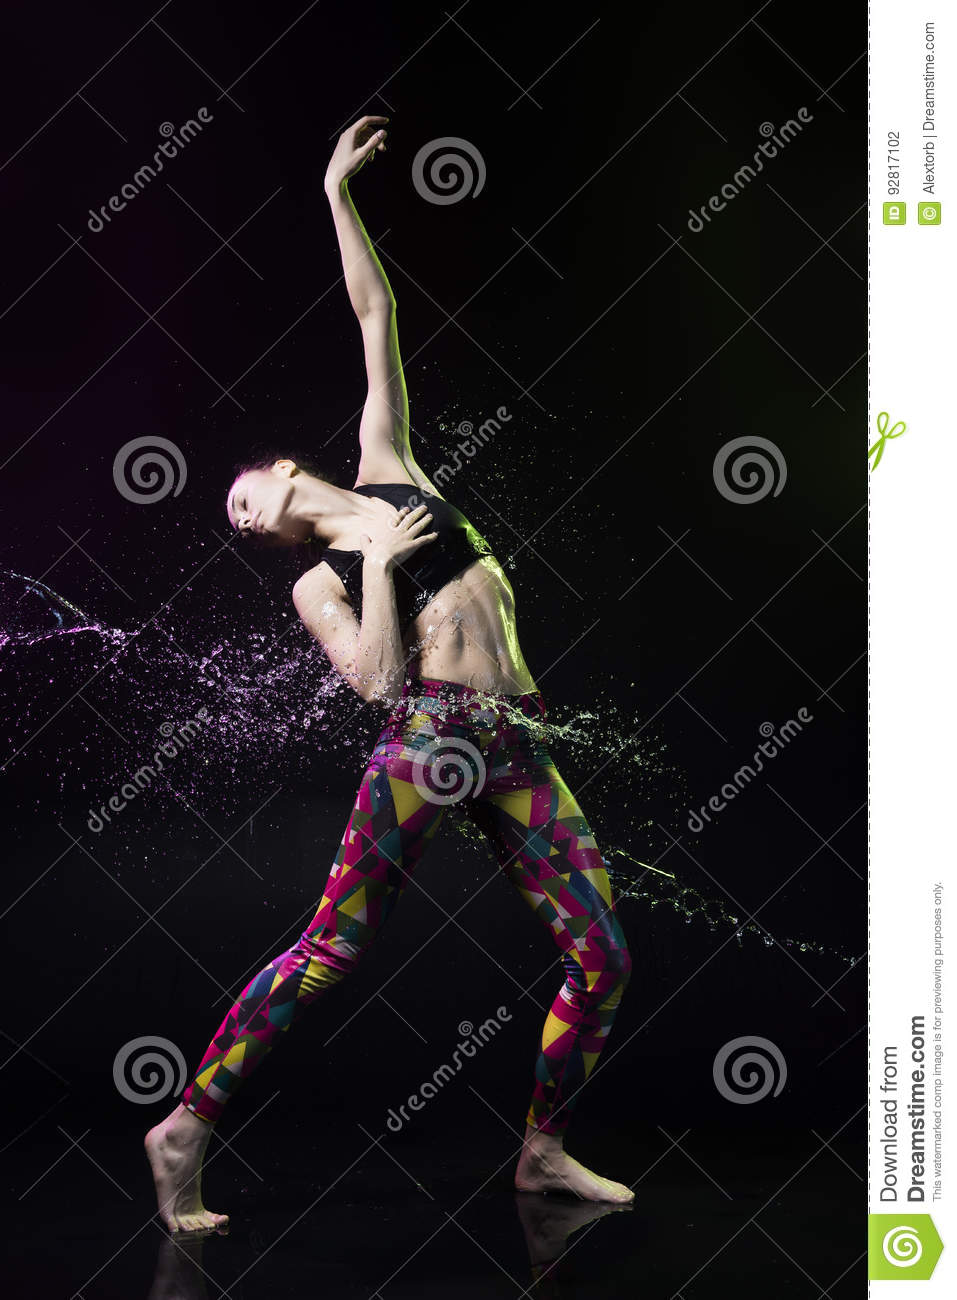 The girl dances on the floor covered with water on a black background and water splashes around her